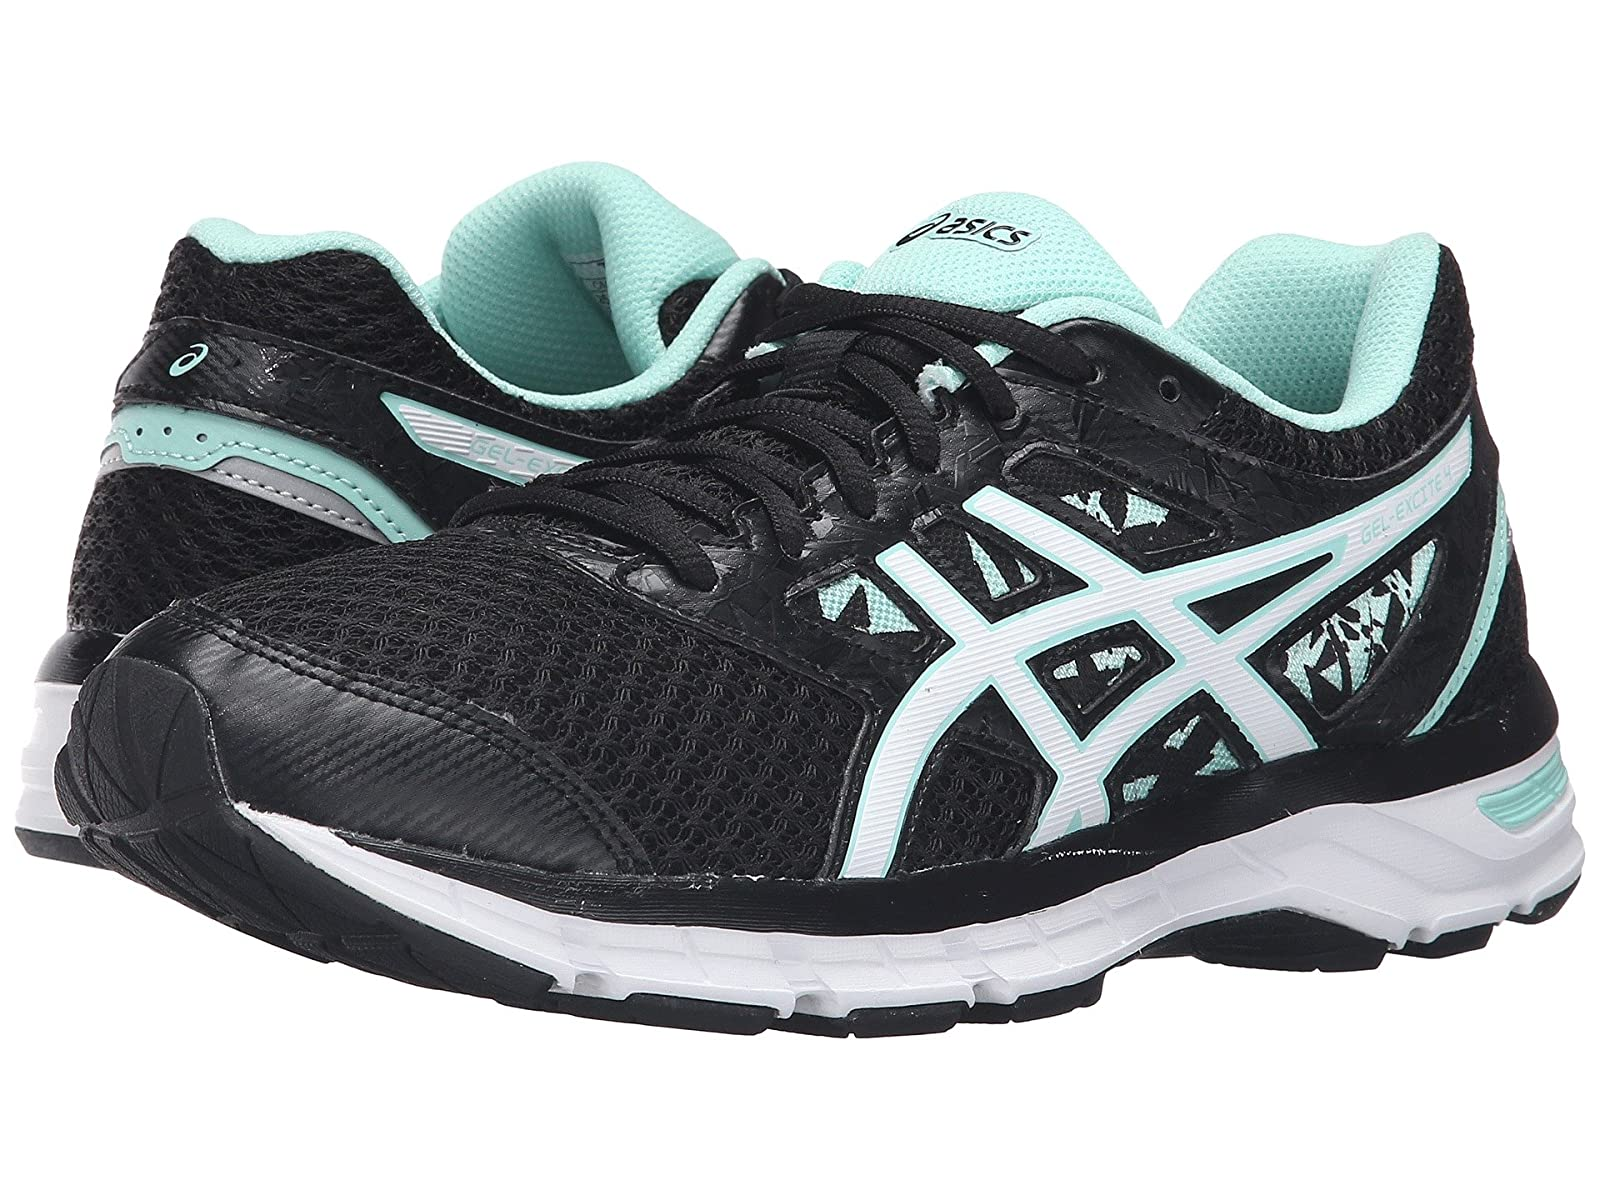 ASICS Gel-Excite® 4Atmospheric grades have affordable shoes